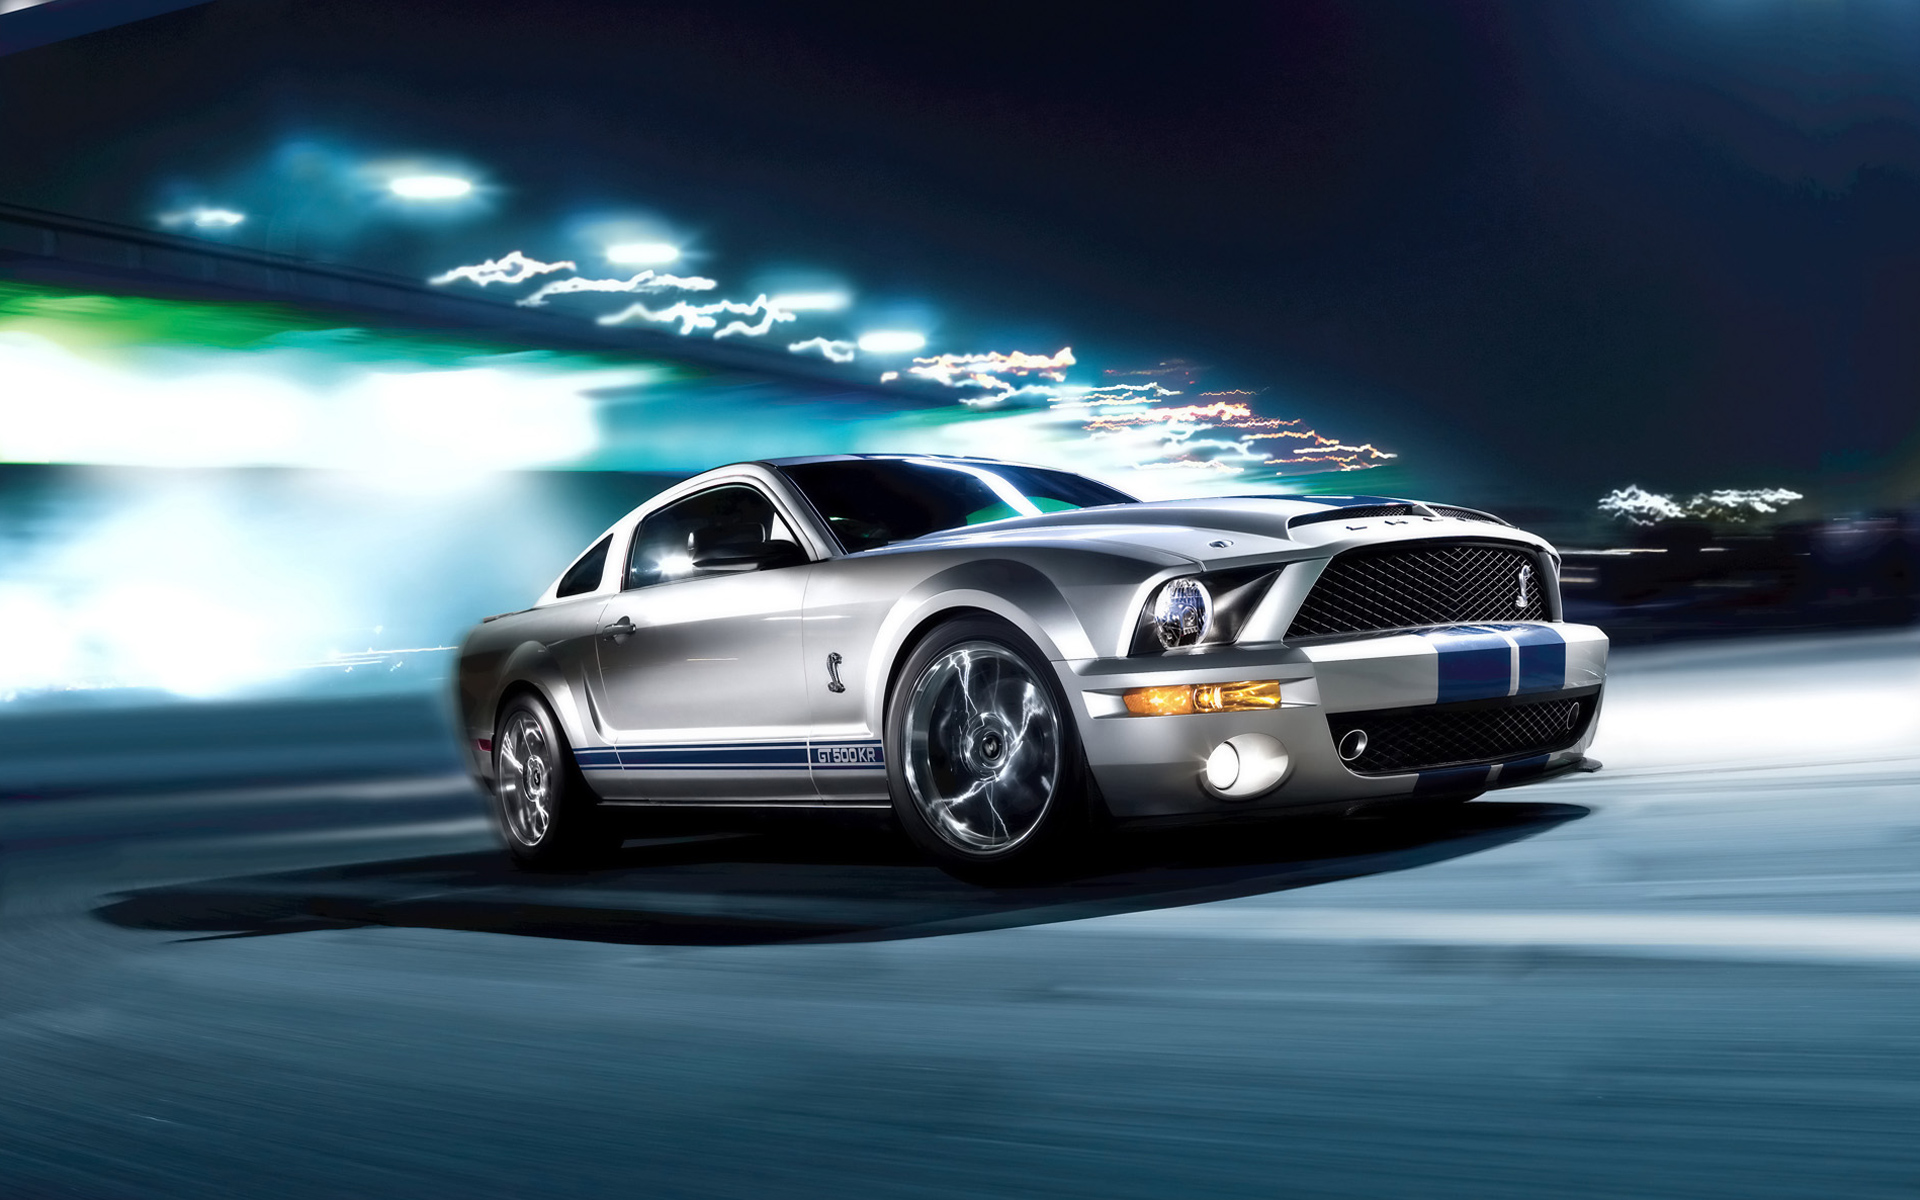 Must see Wallpaper High Quality Mustang - ford-mustang-shelby_11303349  Trends_421657.jpg